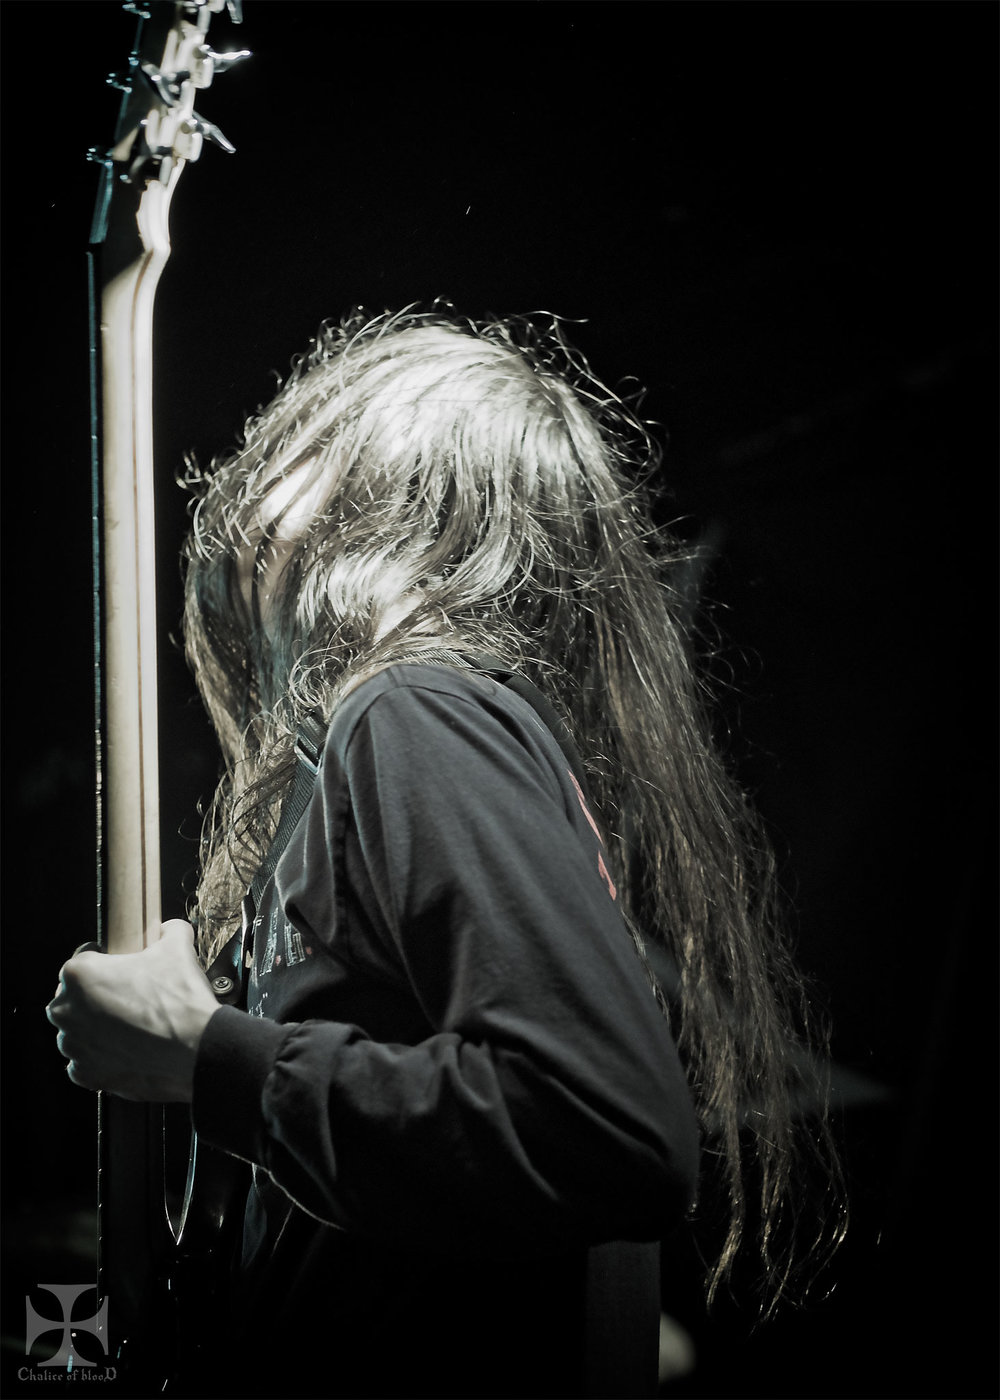 Gorguts---58-watermarked.jpg